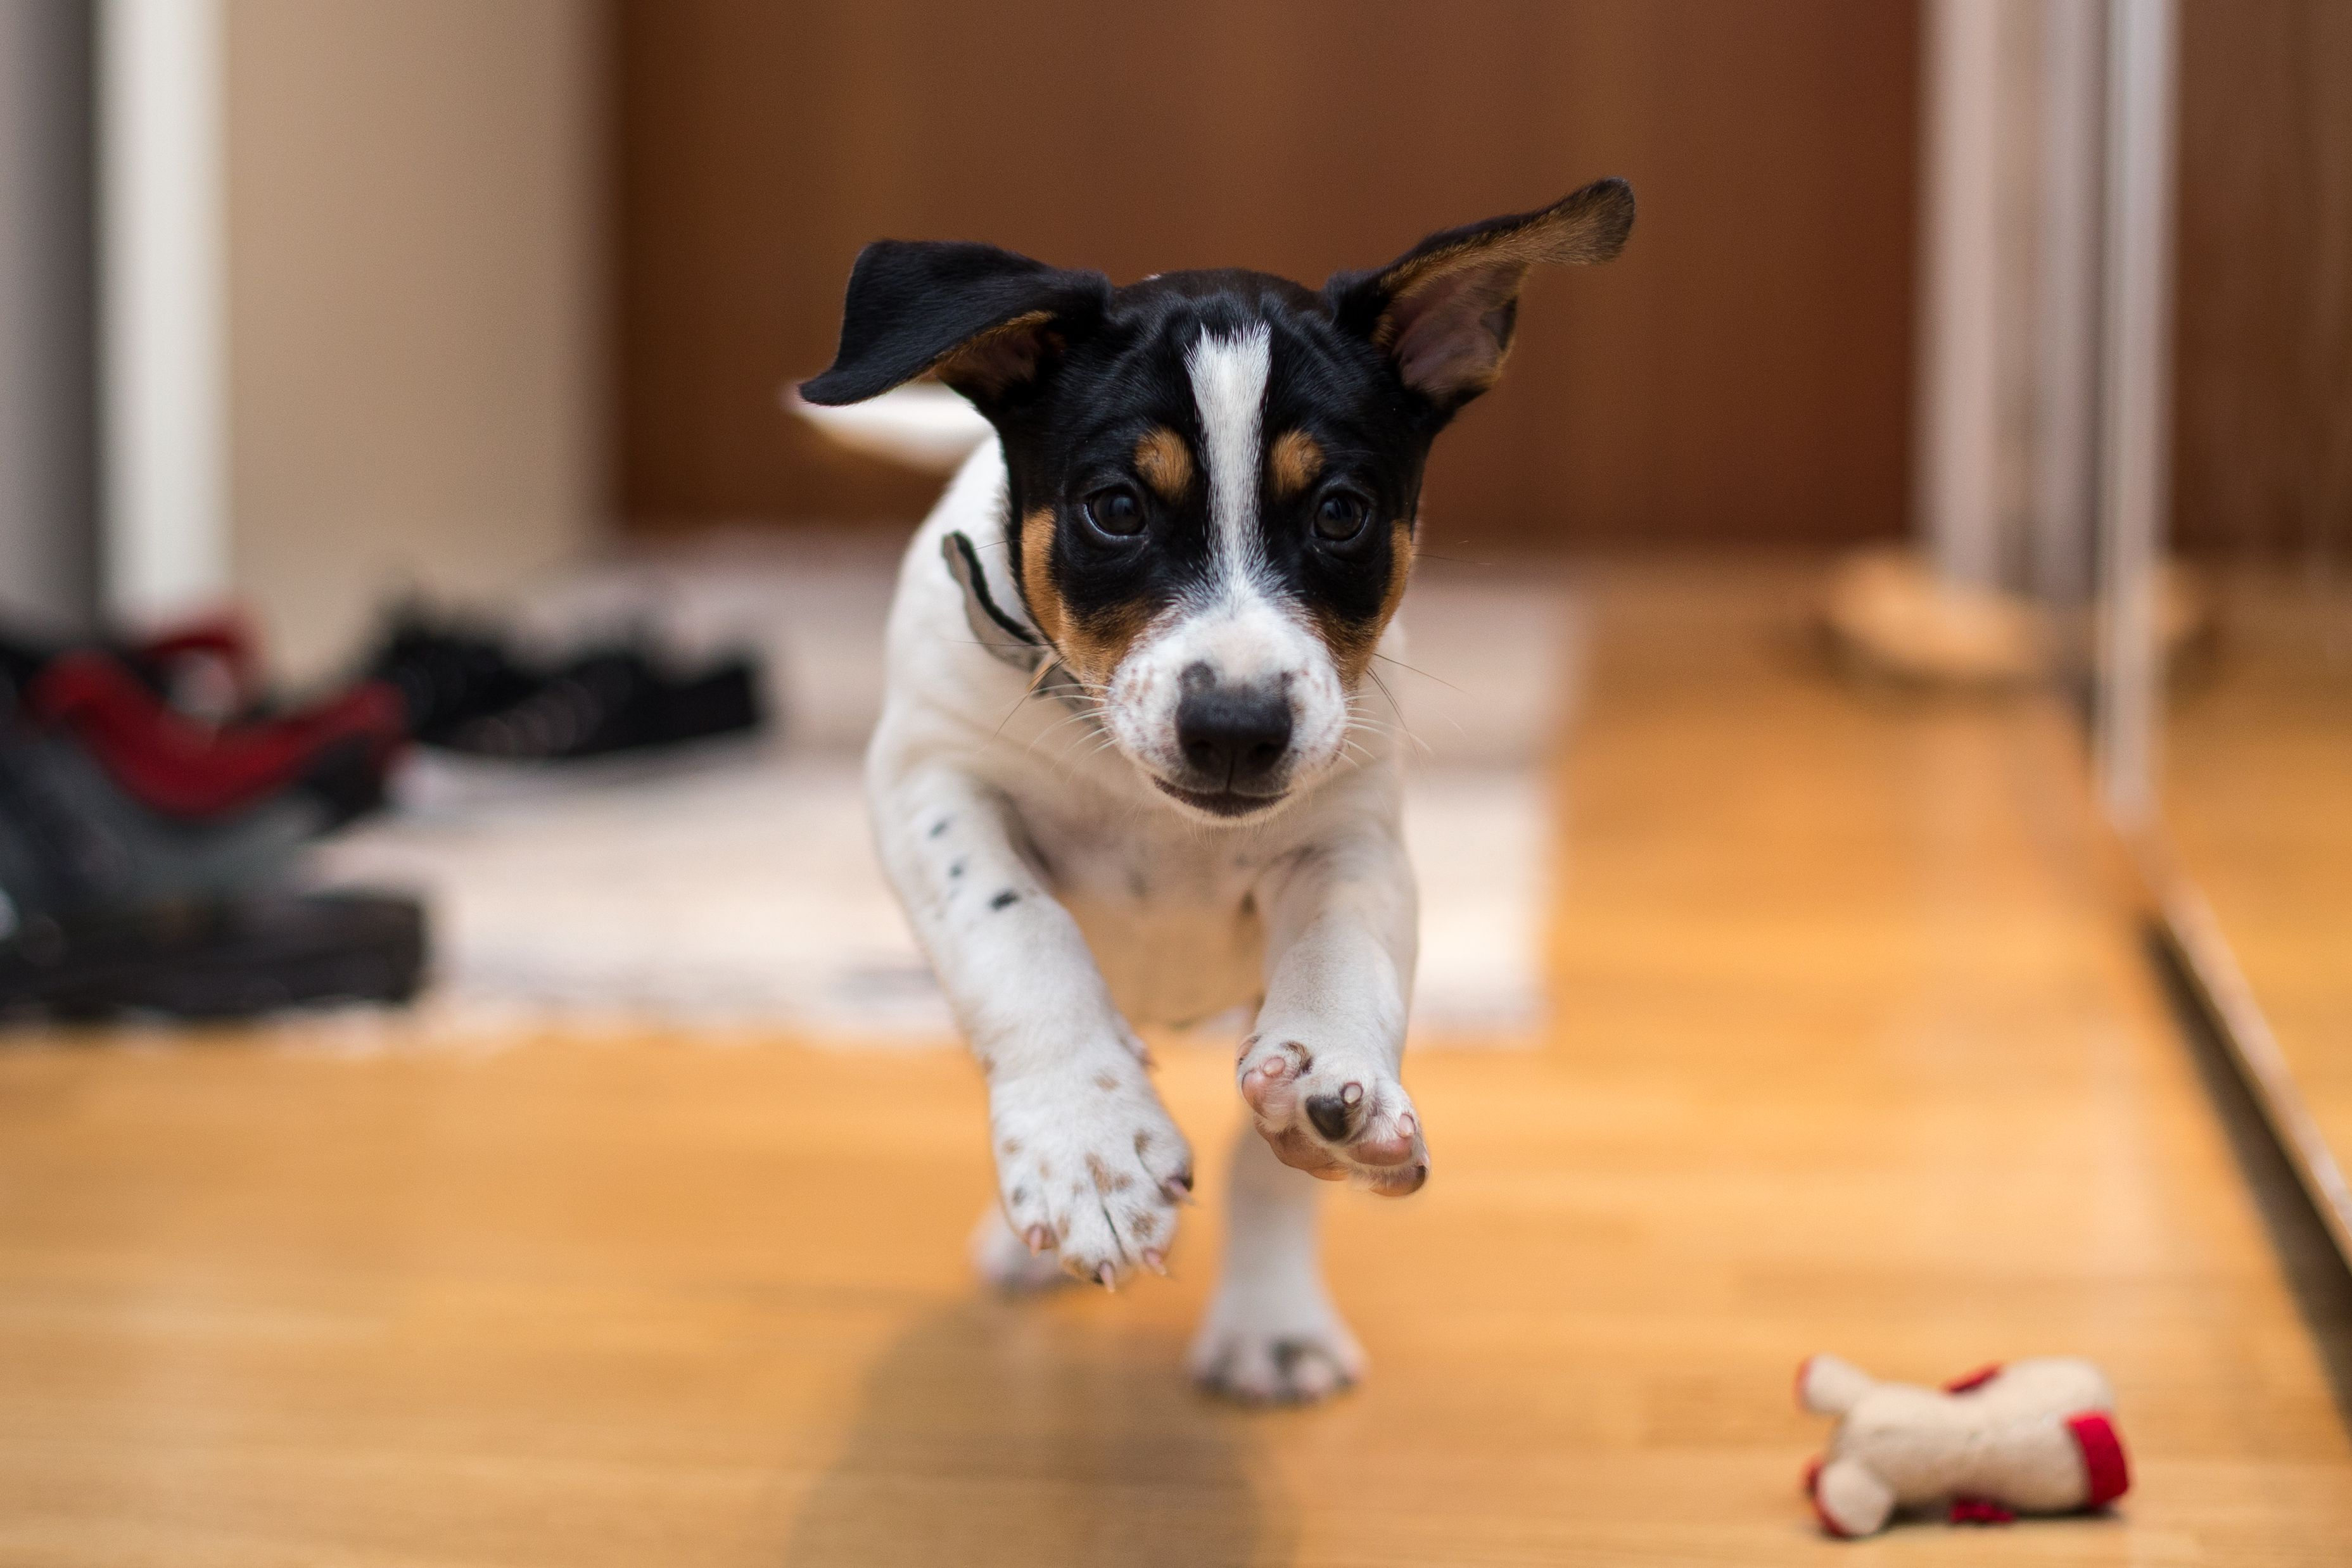 Caring for Your Puppy From Ages 3 to 6 Months